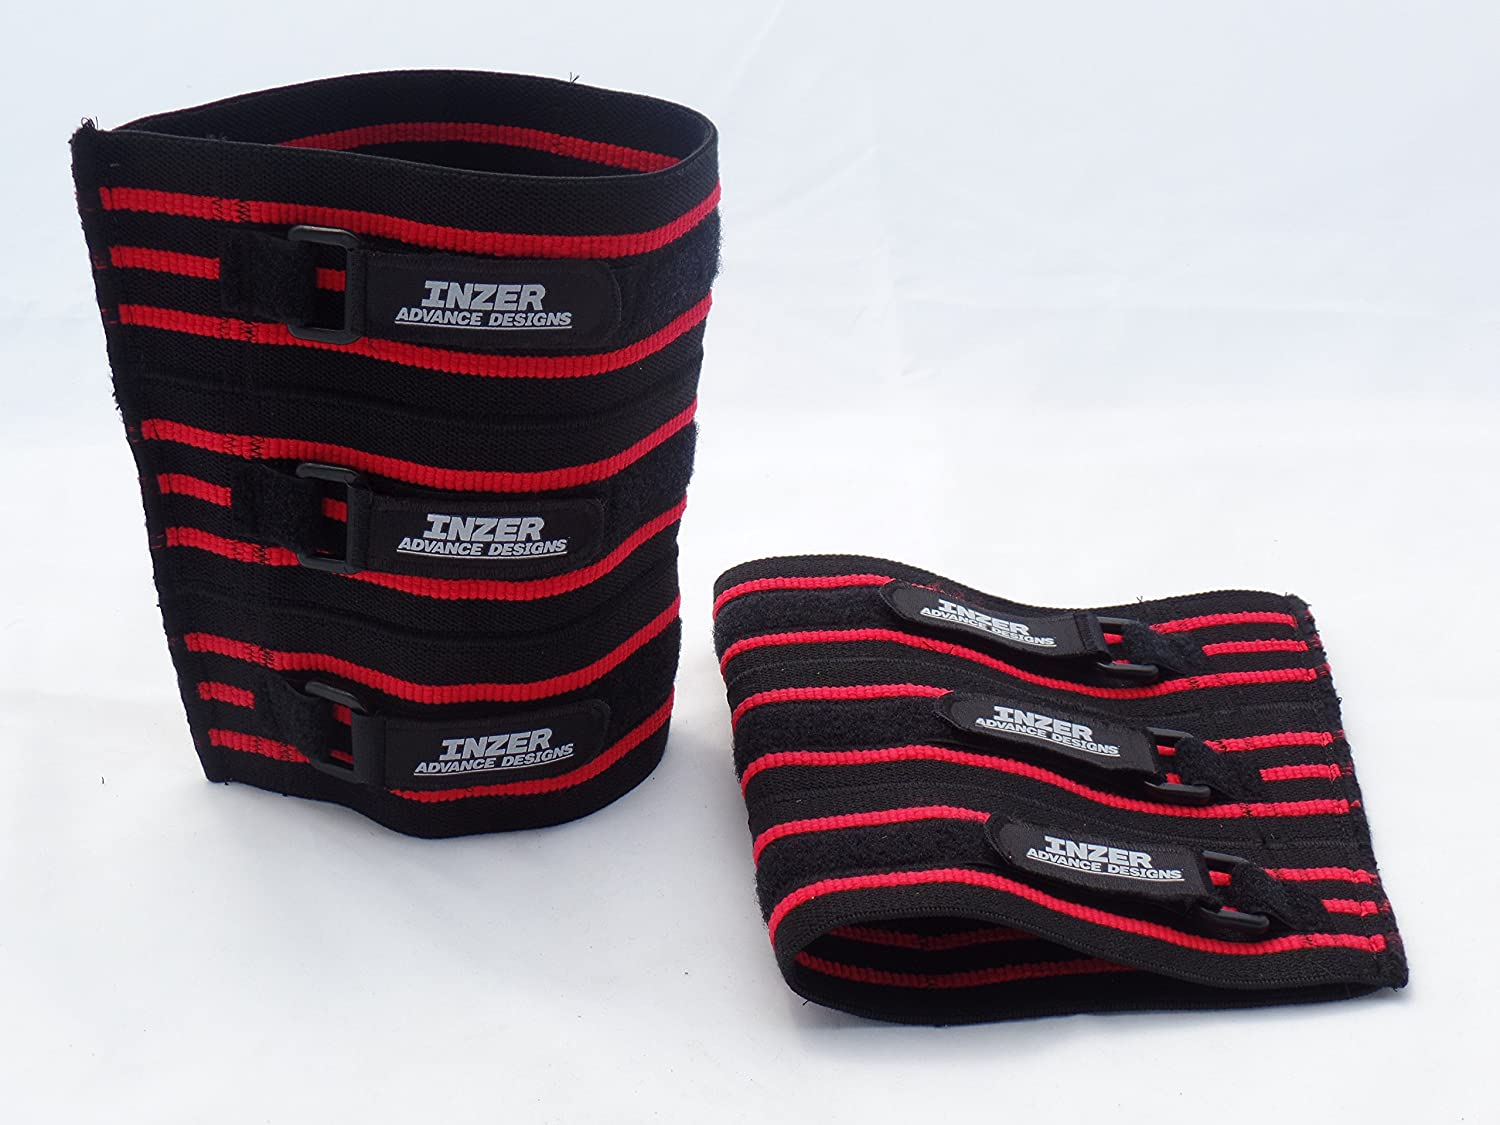 Inzer XT Knee Sleeves(Pair) - Powerlifting, Weightlifting, Strongman : Sports & Outdoors